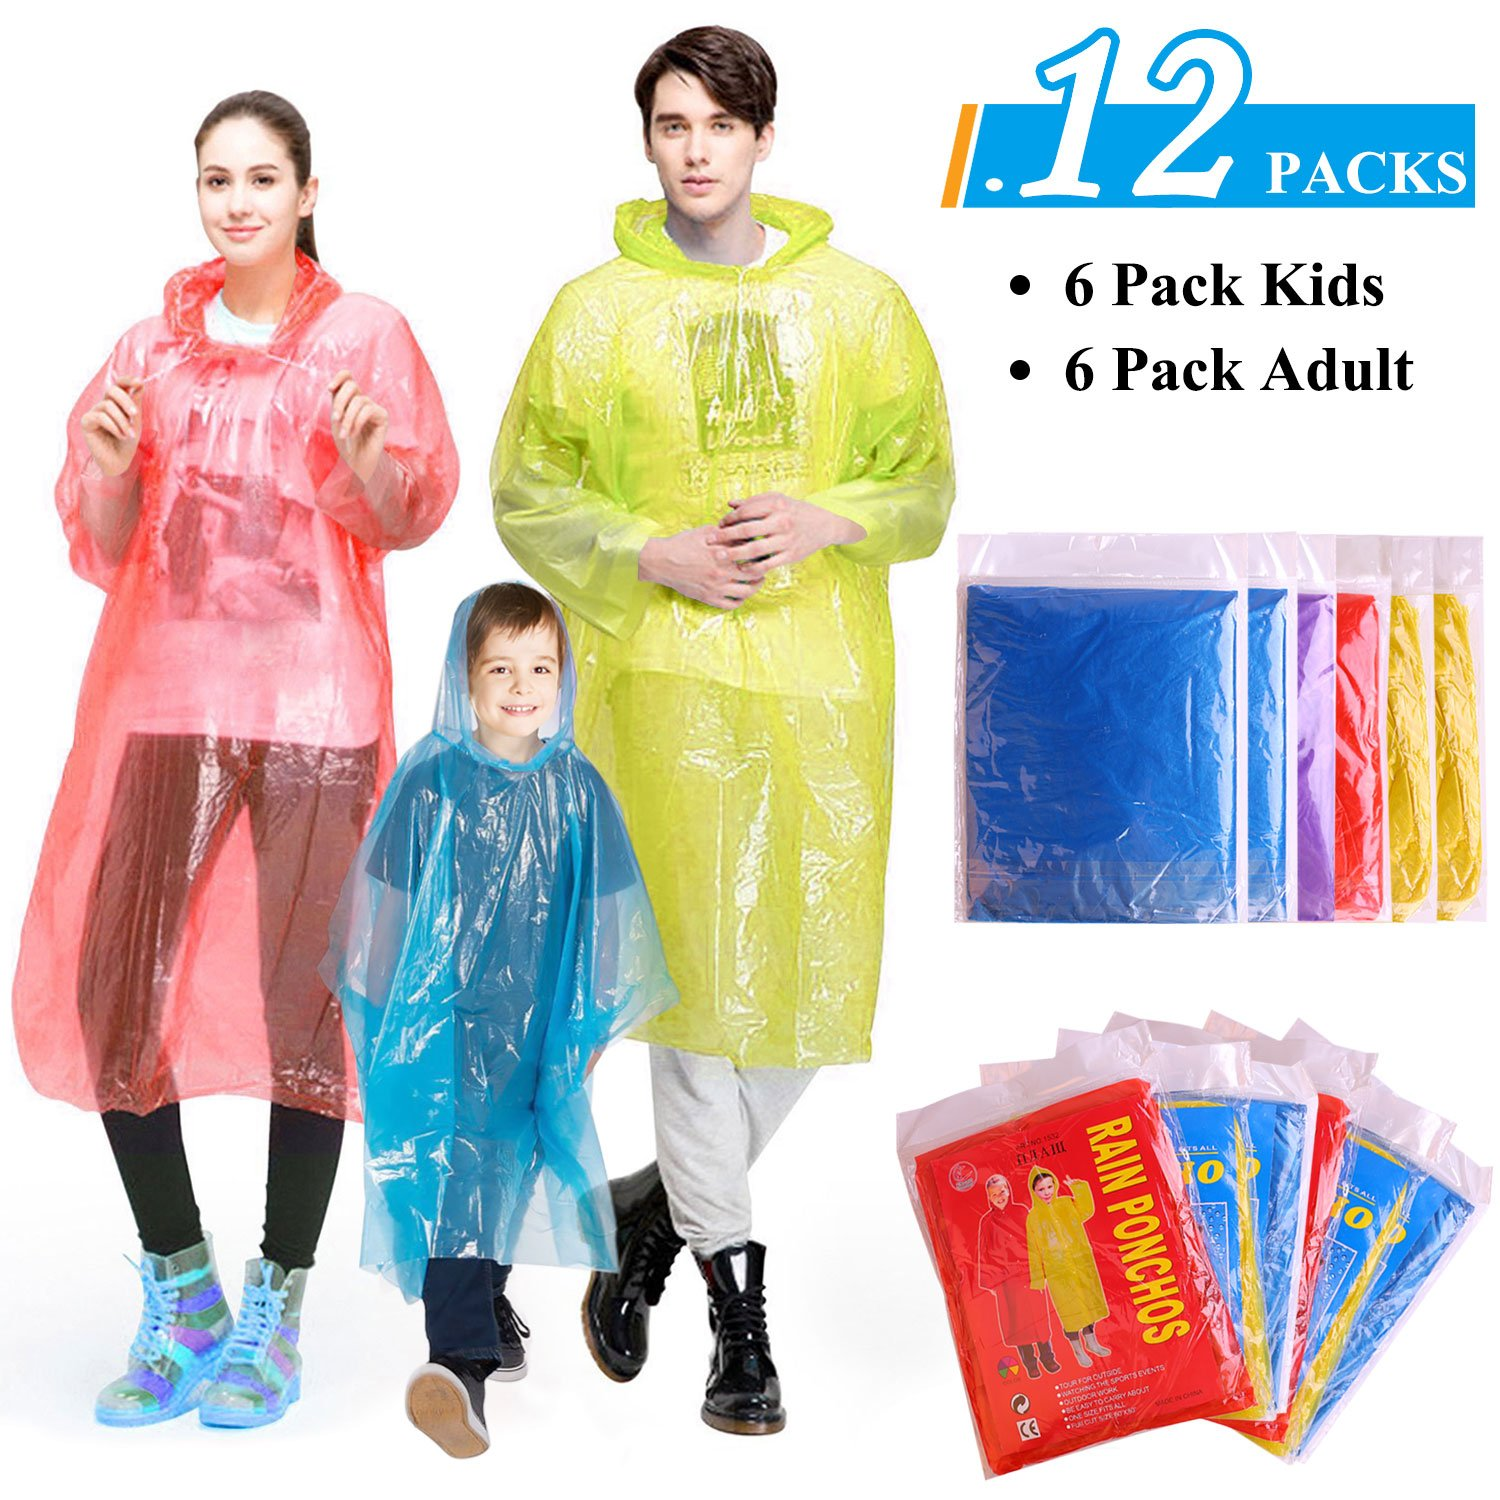 Ginmic Ponchos Family Pack Disposable